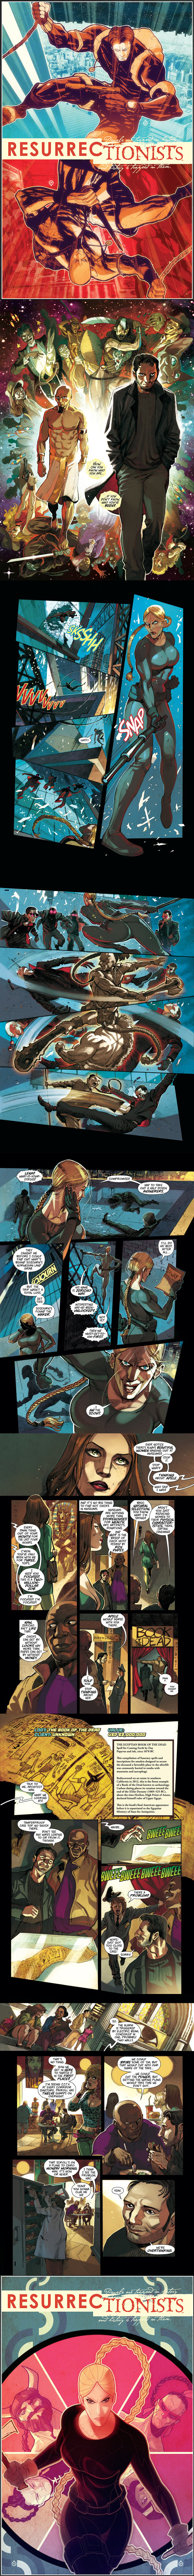 Resurrectionists #1 Preview